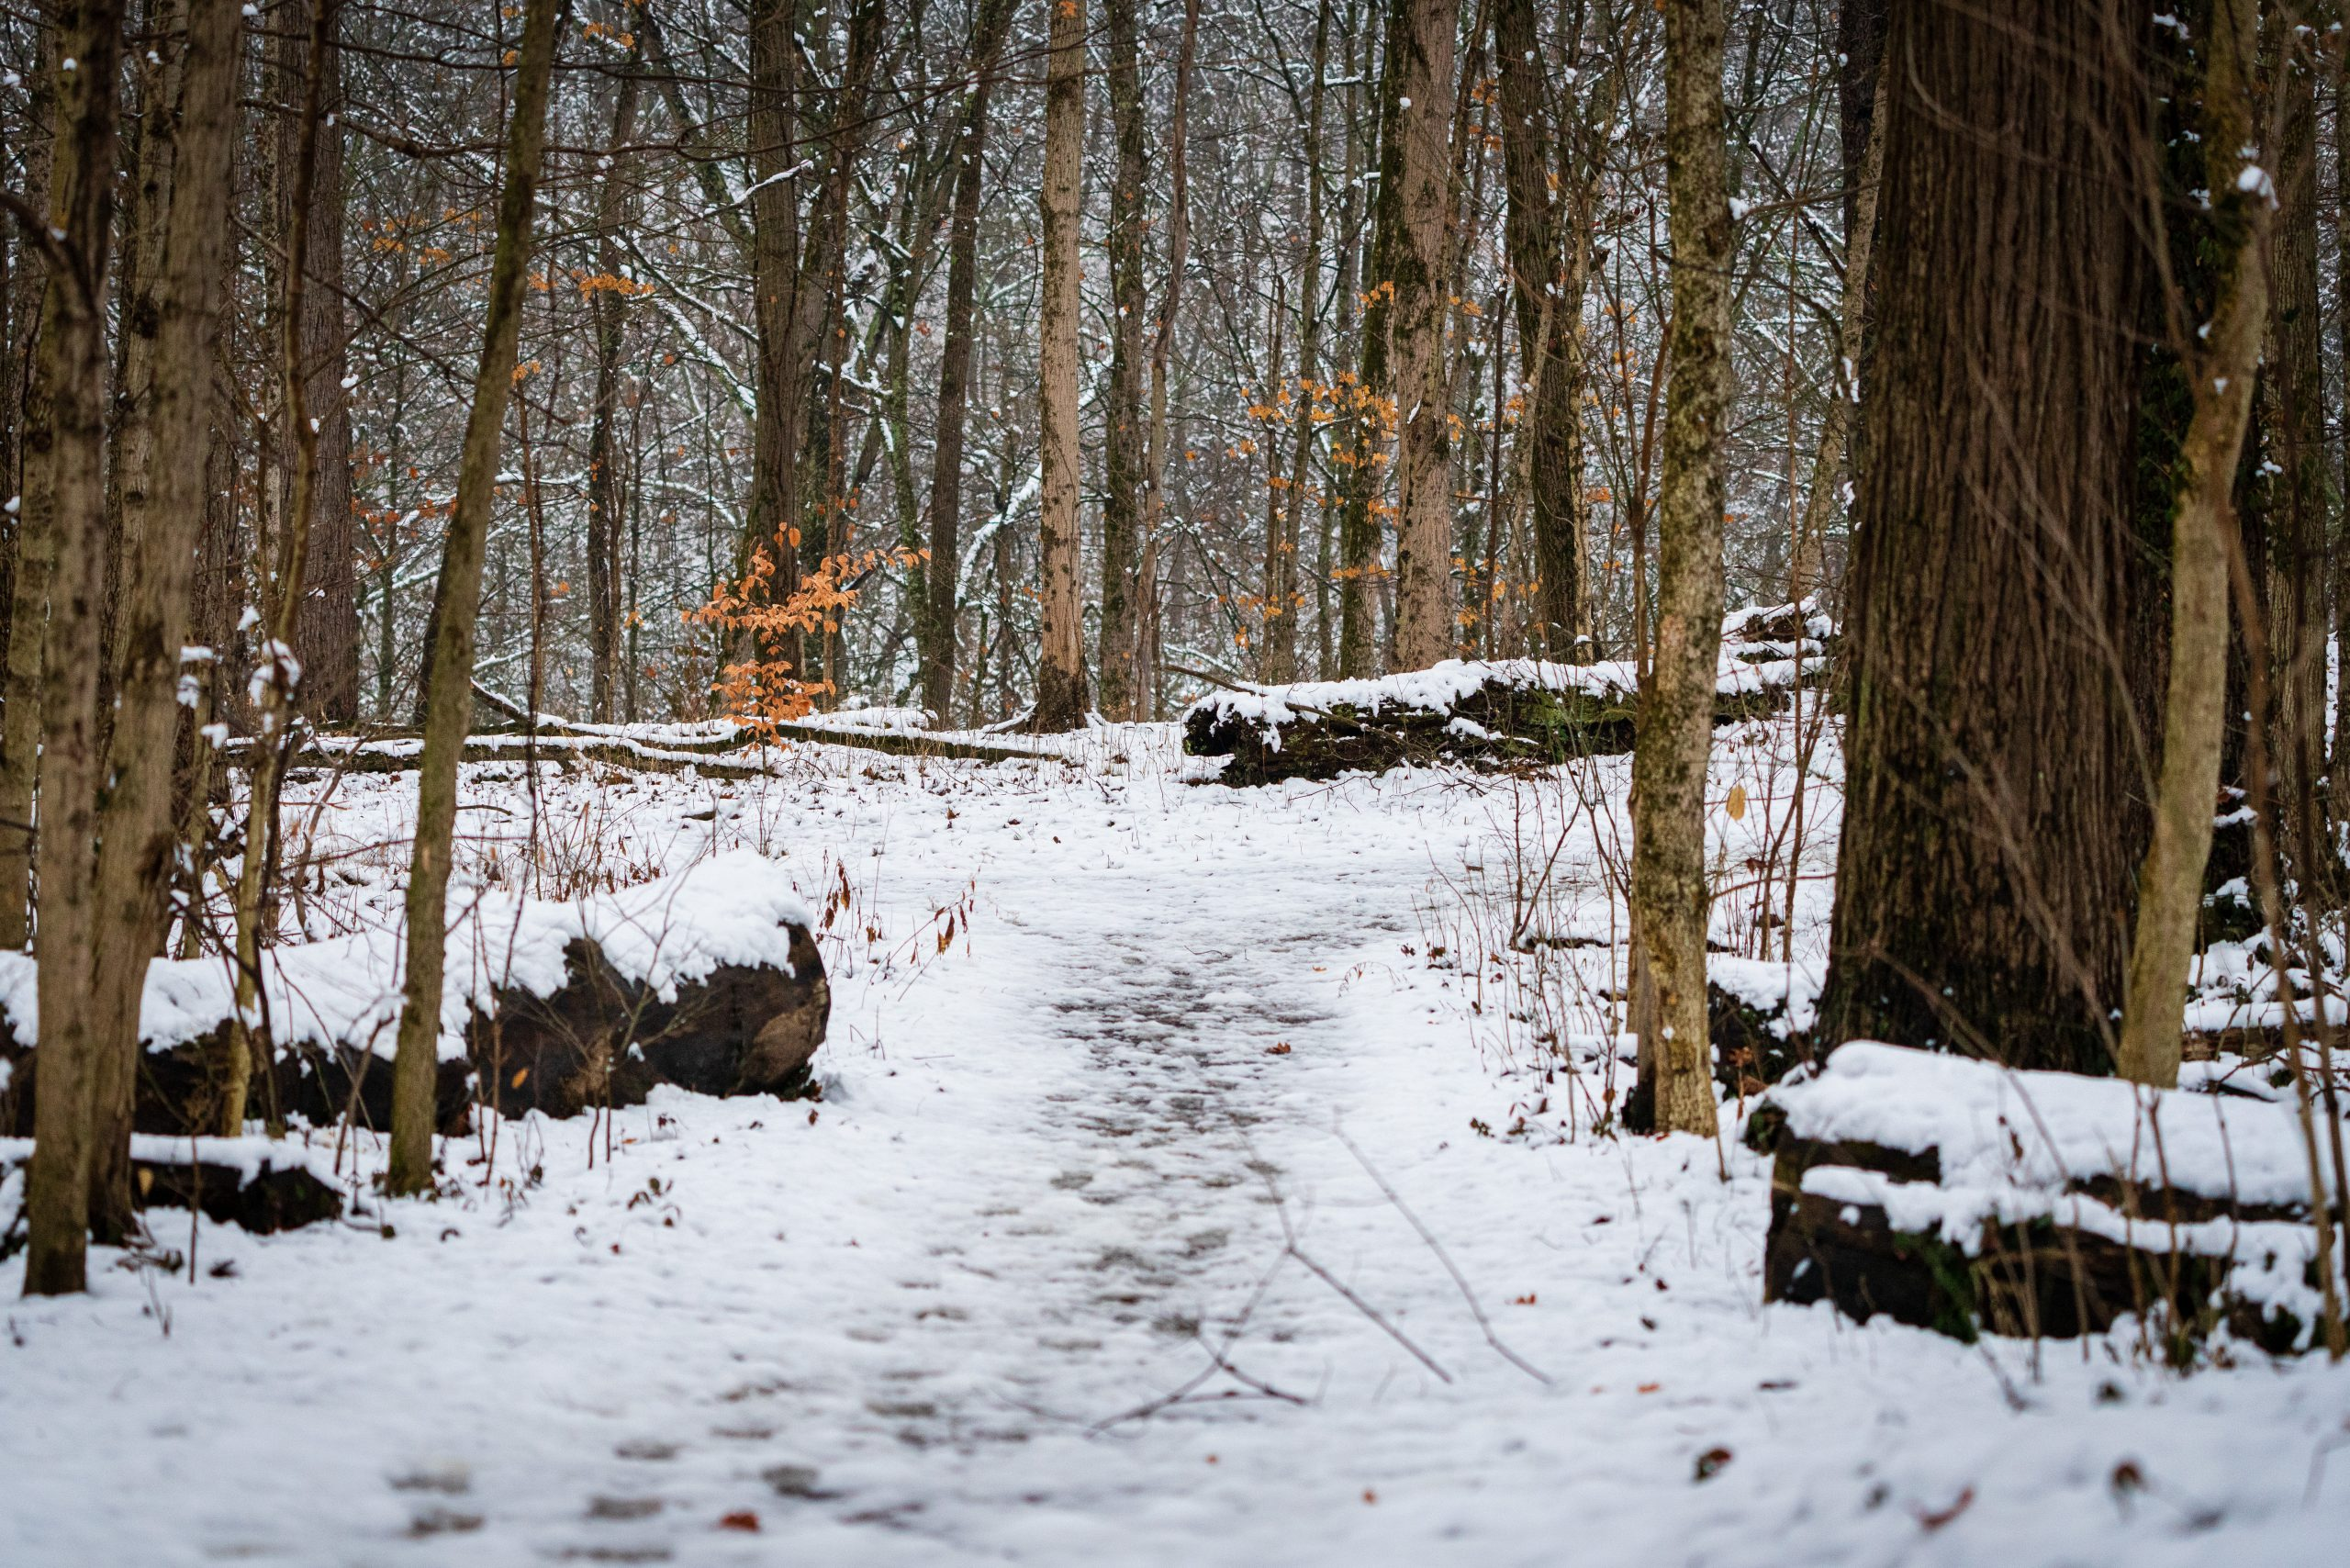 Snow covers the Great Oaks Trail at Winton Woods.